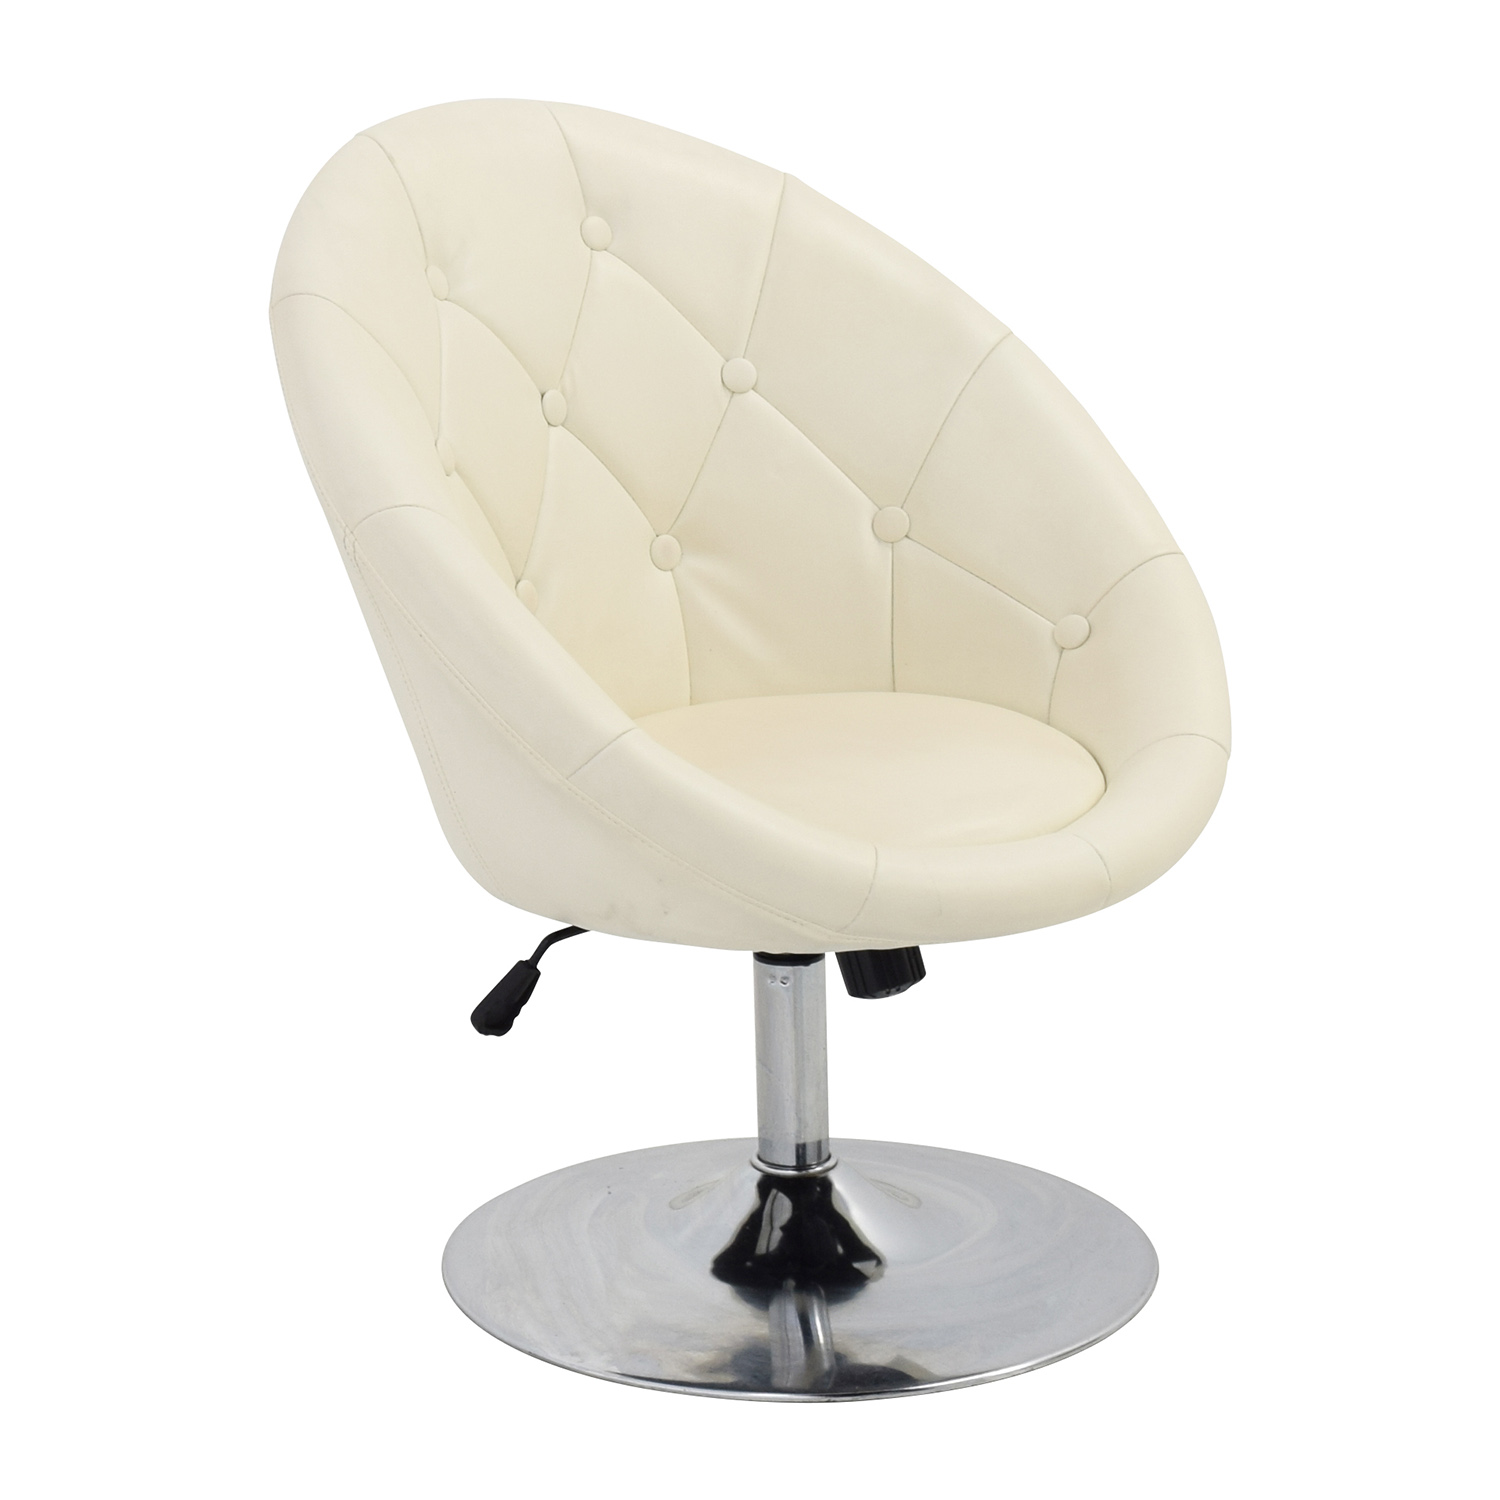 Terrific Swivel Accent Chairs Chair Design Ideas Yosepofficial Info Inzonedesignstudio Interior Chair Design Inzonedesignstudiocom